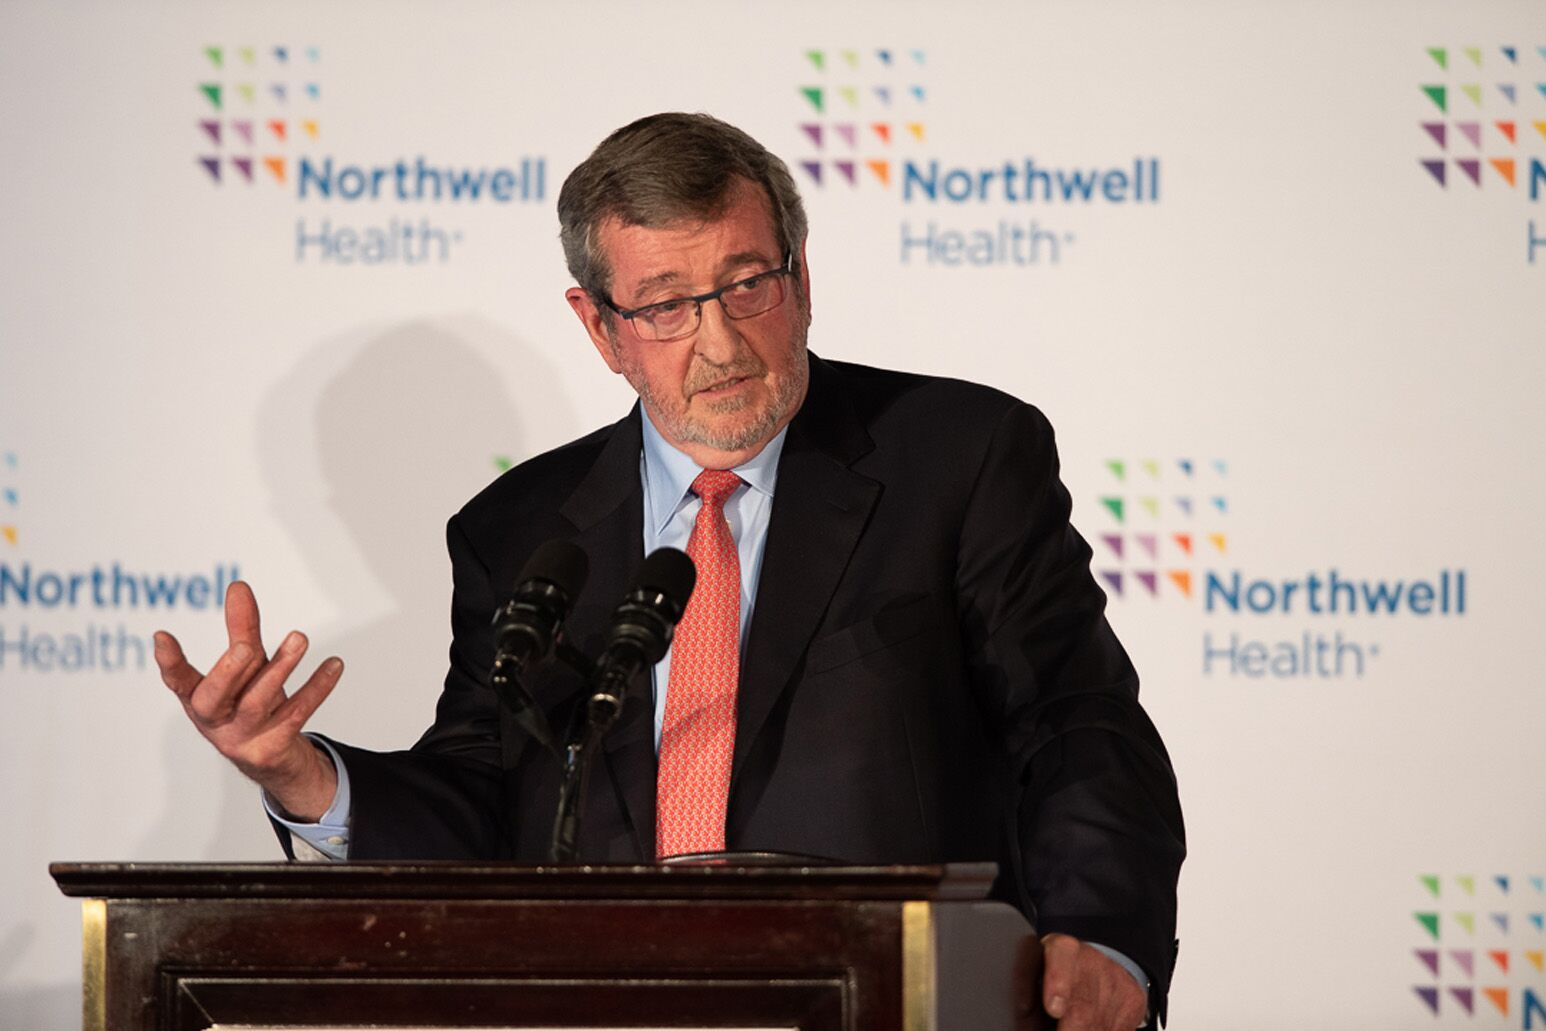 Michael Dowling speaking at a podium